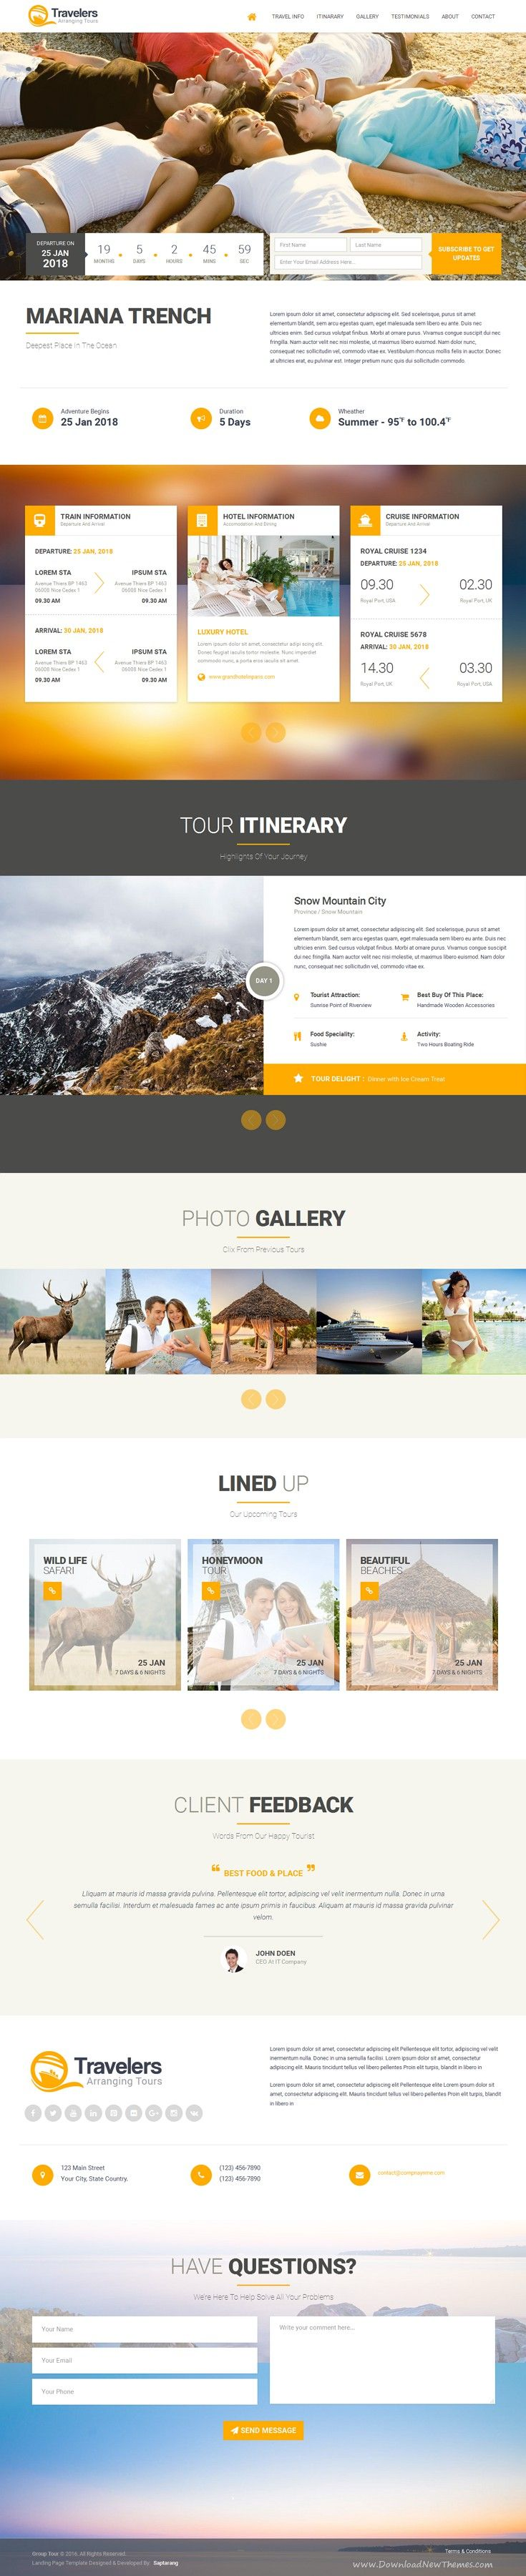 Traveler Landing Page is a responsive layout built using Bootstrap, HTML5 and CSS3. Perfect for tourism business and respective agencies to showcase their upcoming tours for their customers. #travel #landingpage #template